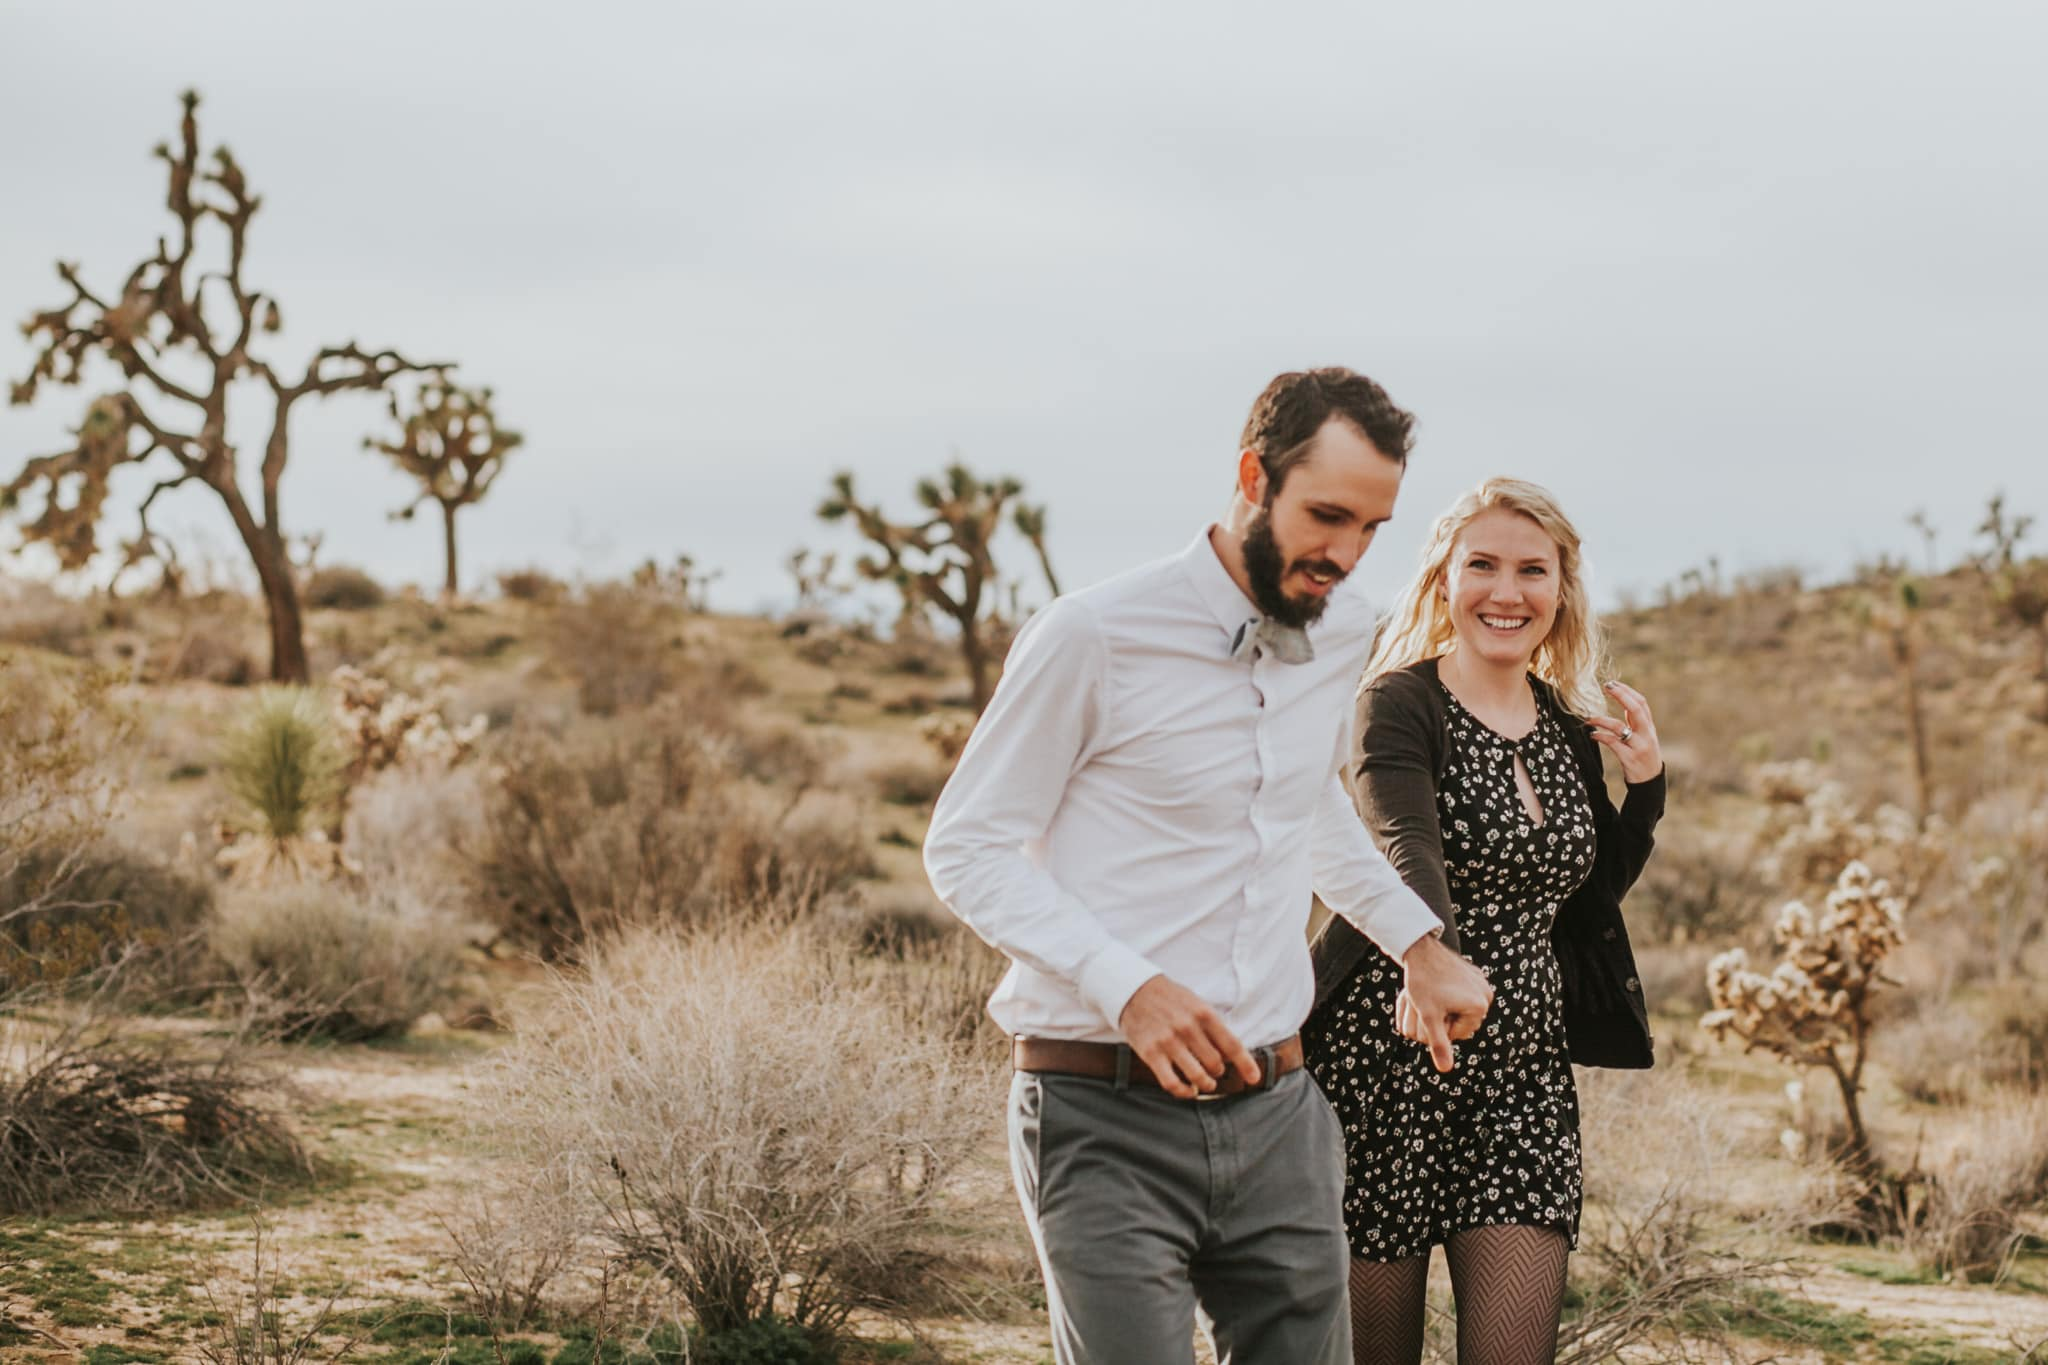 Joshua Tree Desert Engagement Photographer by Marcela Pulido Portland Wedding Photographer